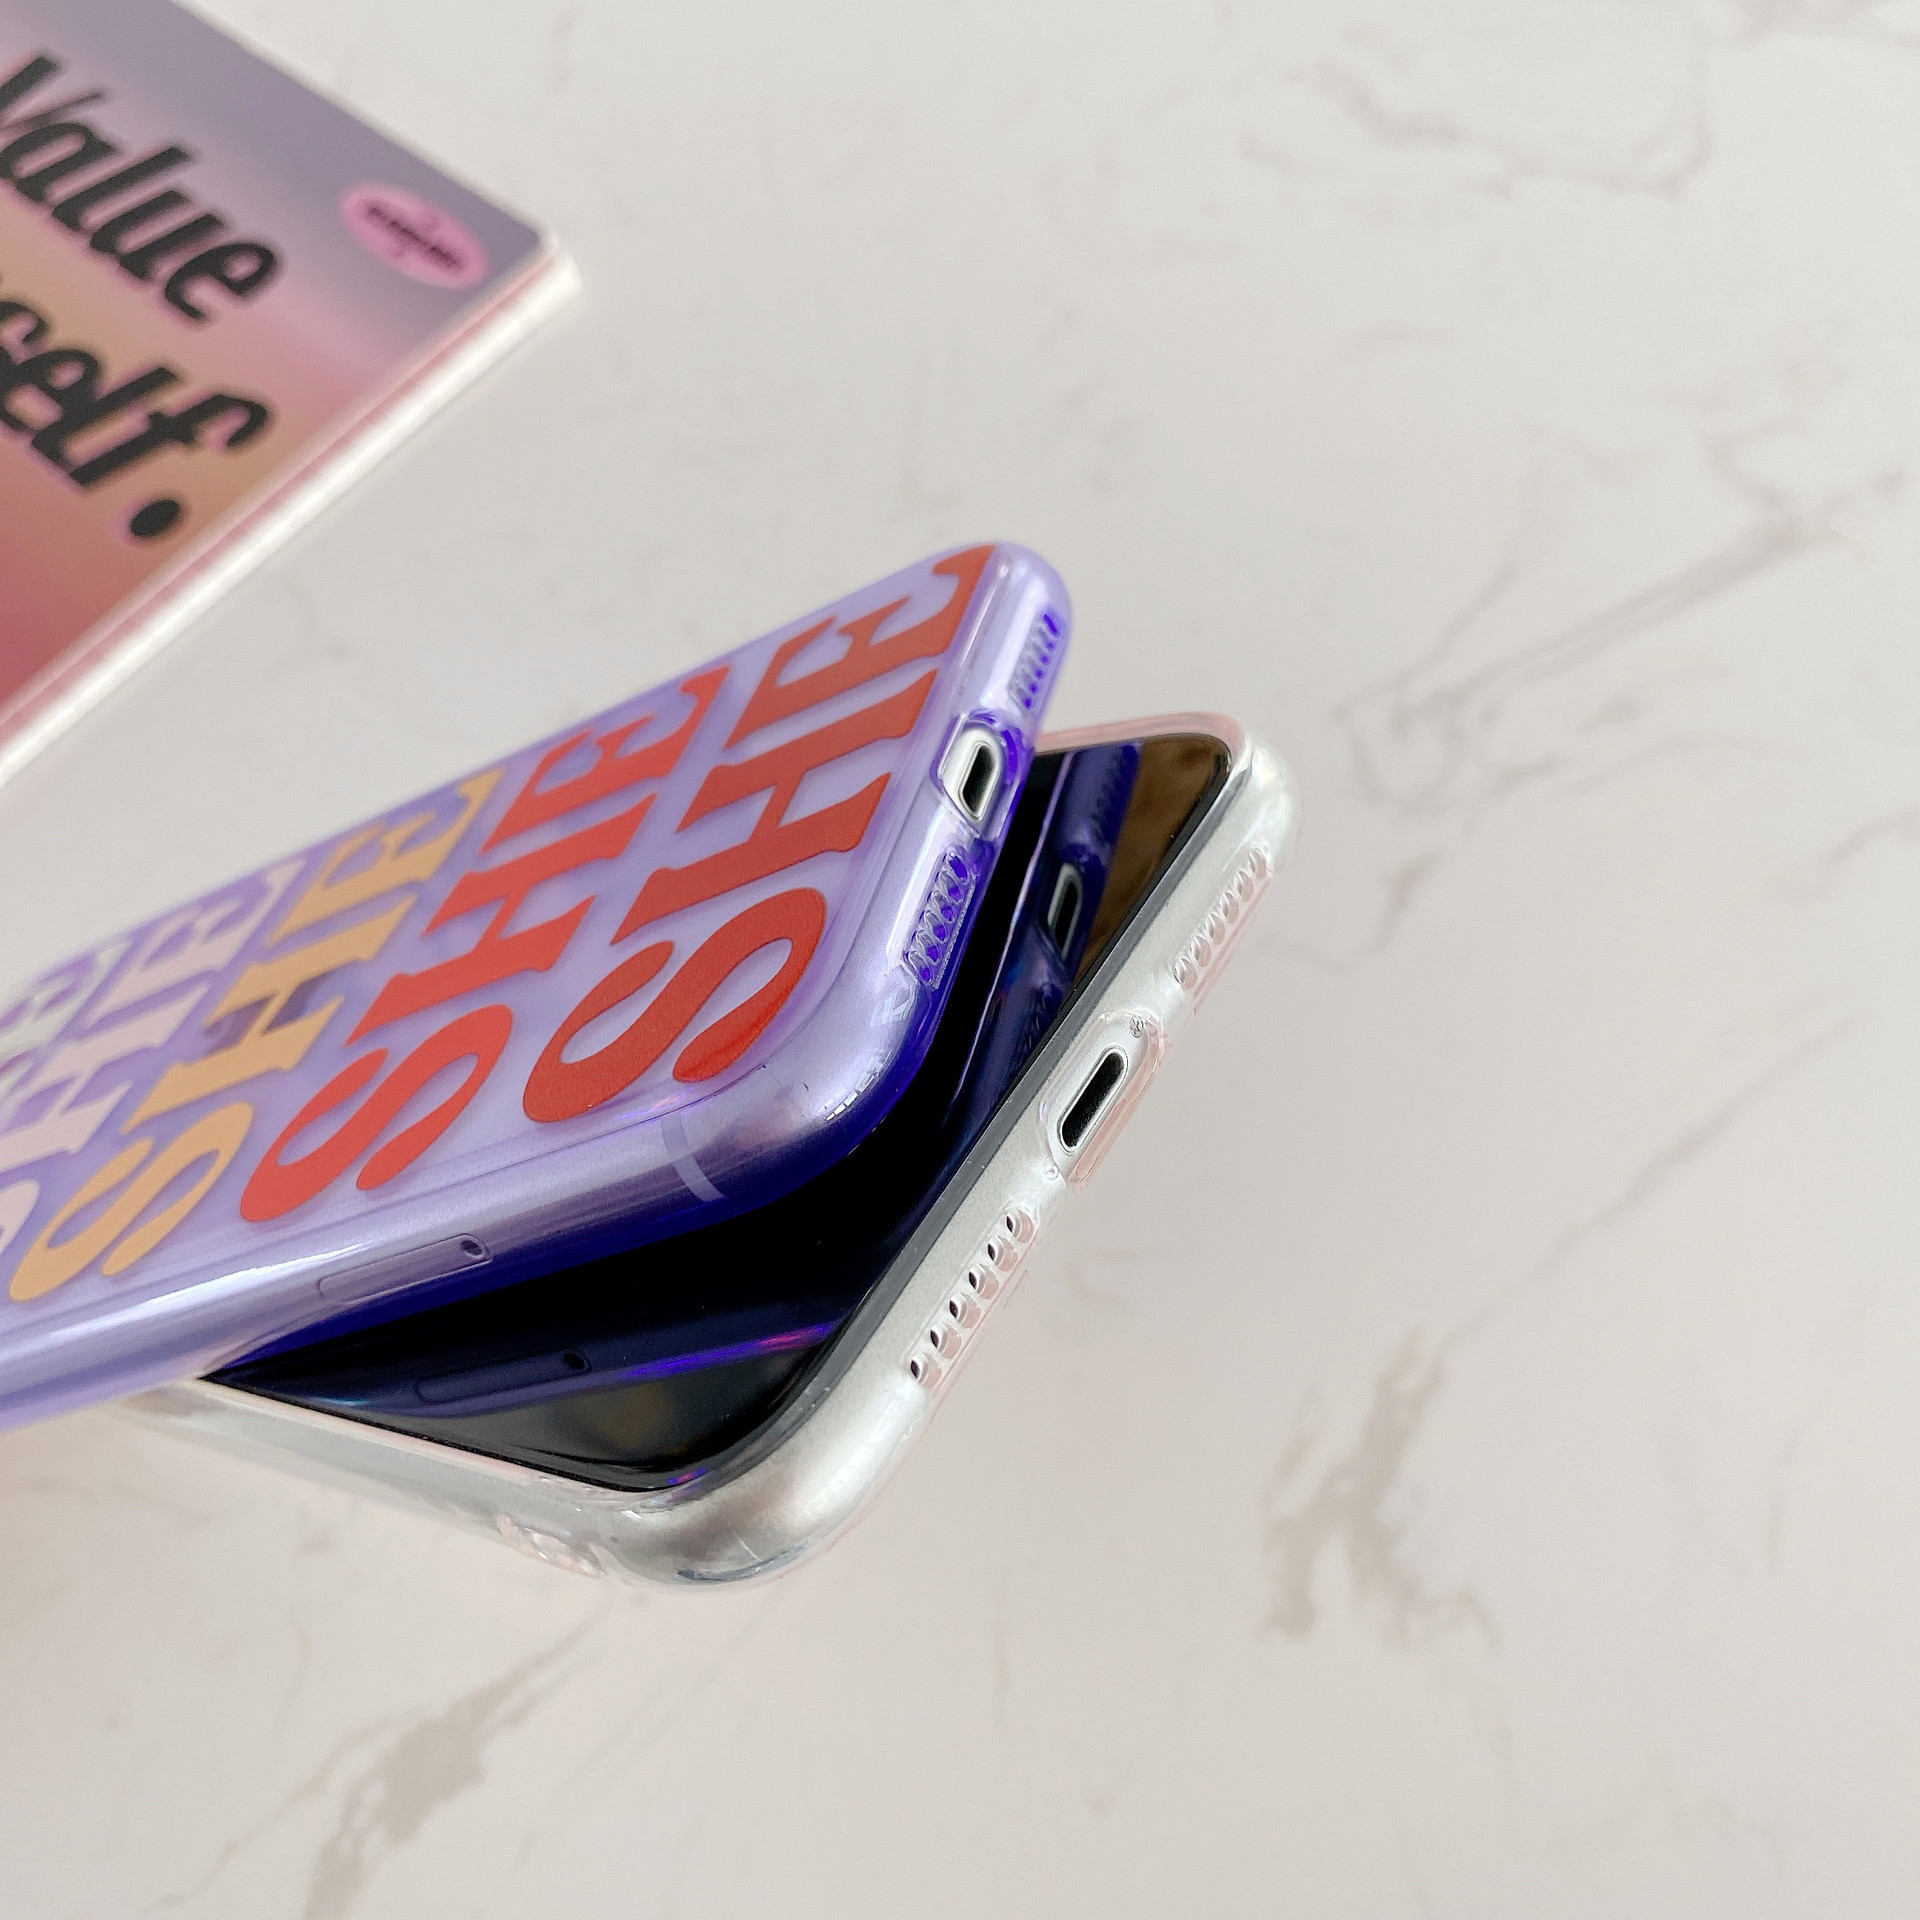 Colorful Gradient Letter Case For iPhone 11 Pro Max SE 2020 X XR XS Max 7 8 Plus Transparent Soft Silicone Phone Cover Coque